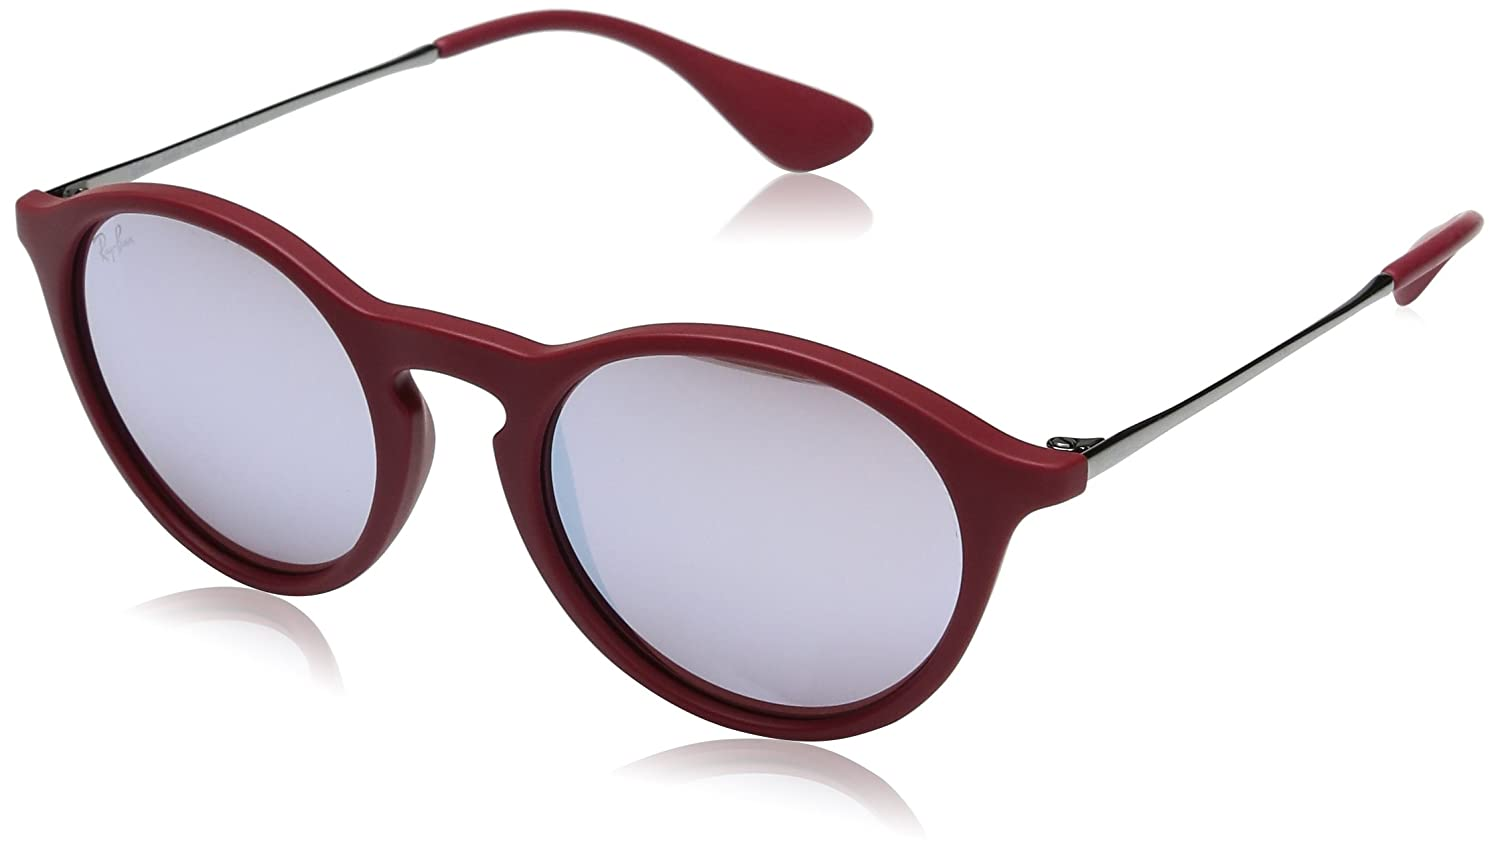 55b92c136dd0 Clothing, Shoes & Jewelry>Women>Contemporary & Designer>Accessories> Sunglasses & Eyewear Accessories> Sunglasses. price:75 ray ban justin blue  mirror ...